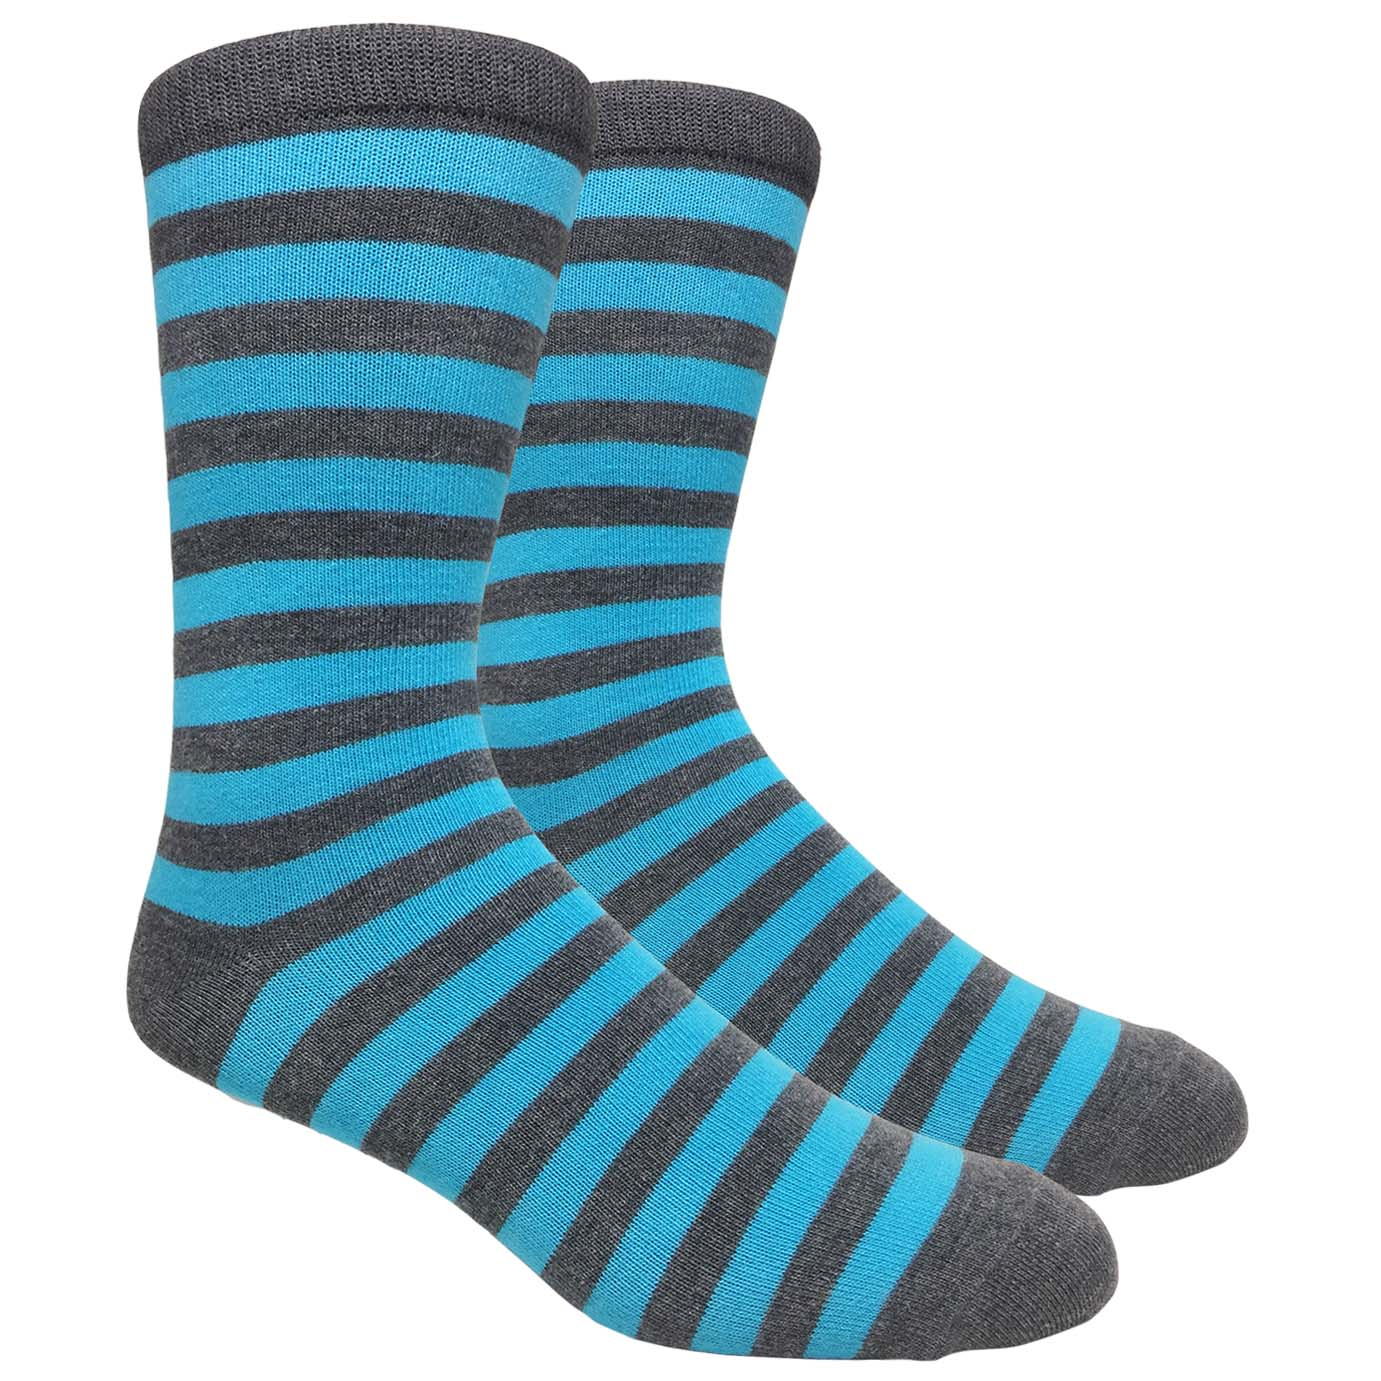 FineFit Black Label Stripe Socks - Charcoal Grey & Blue